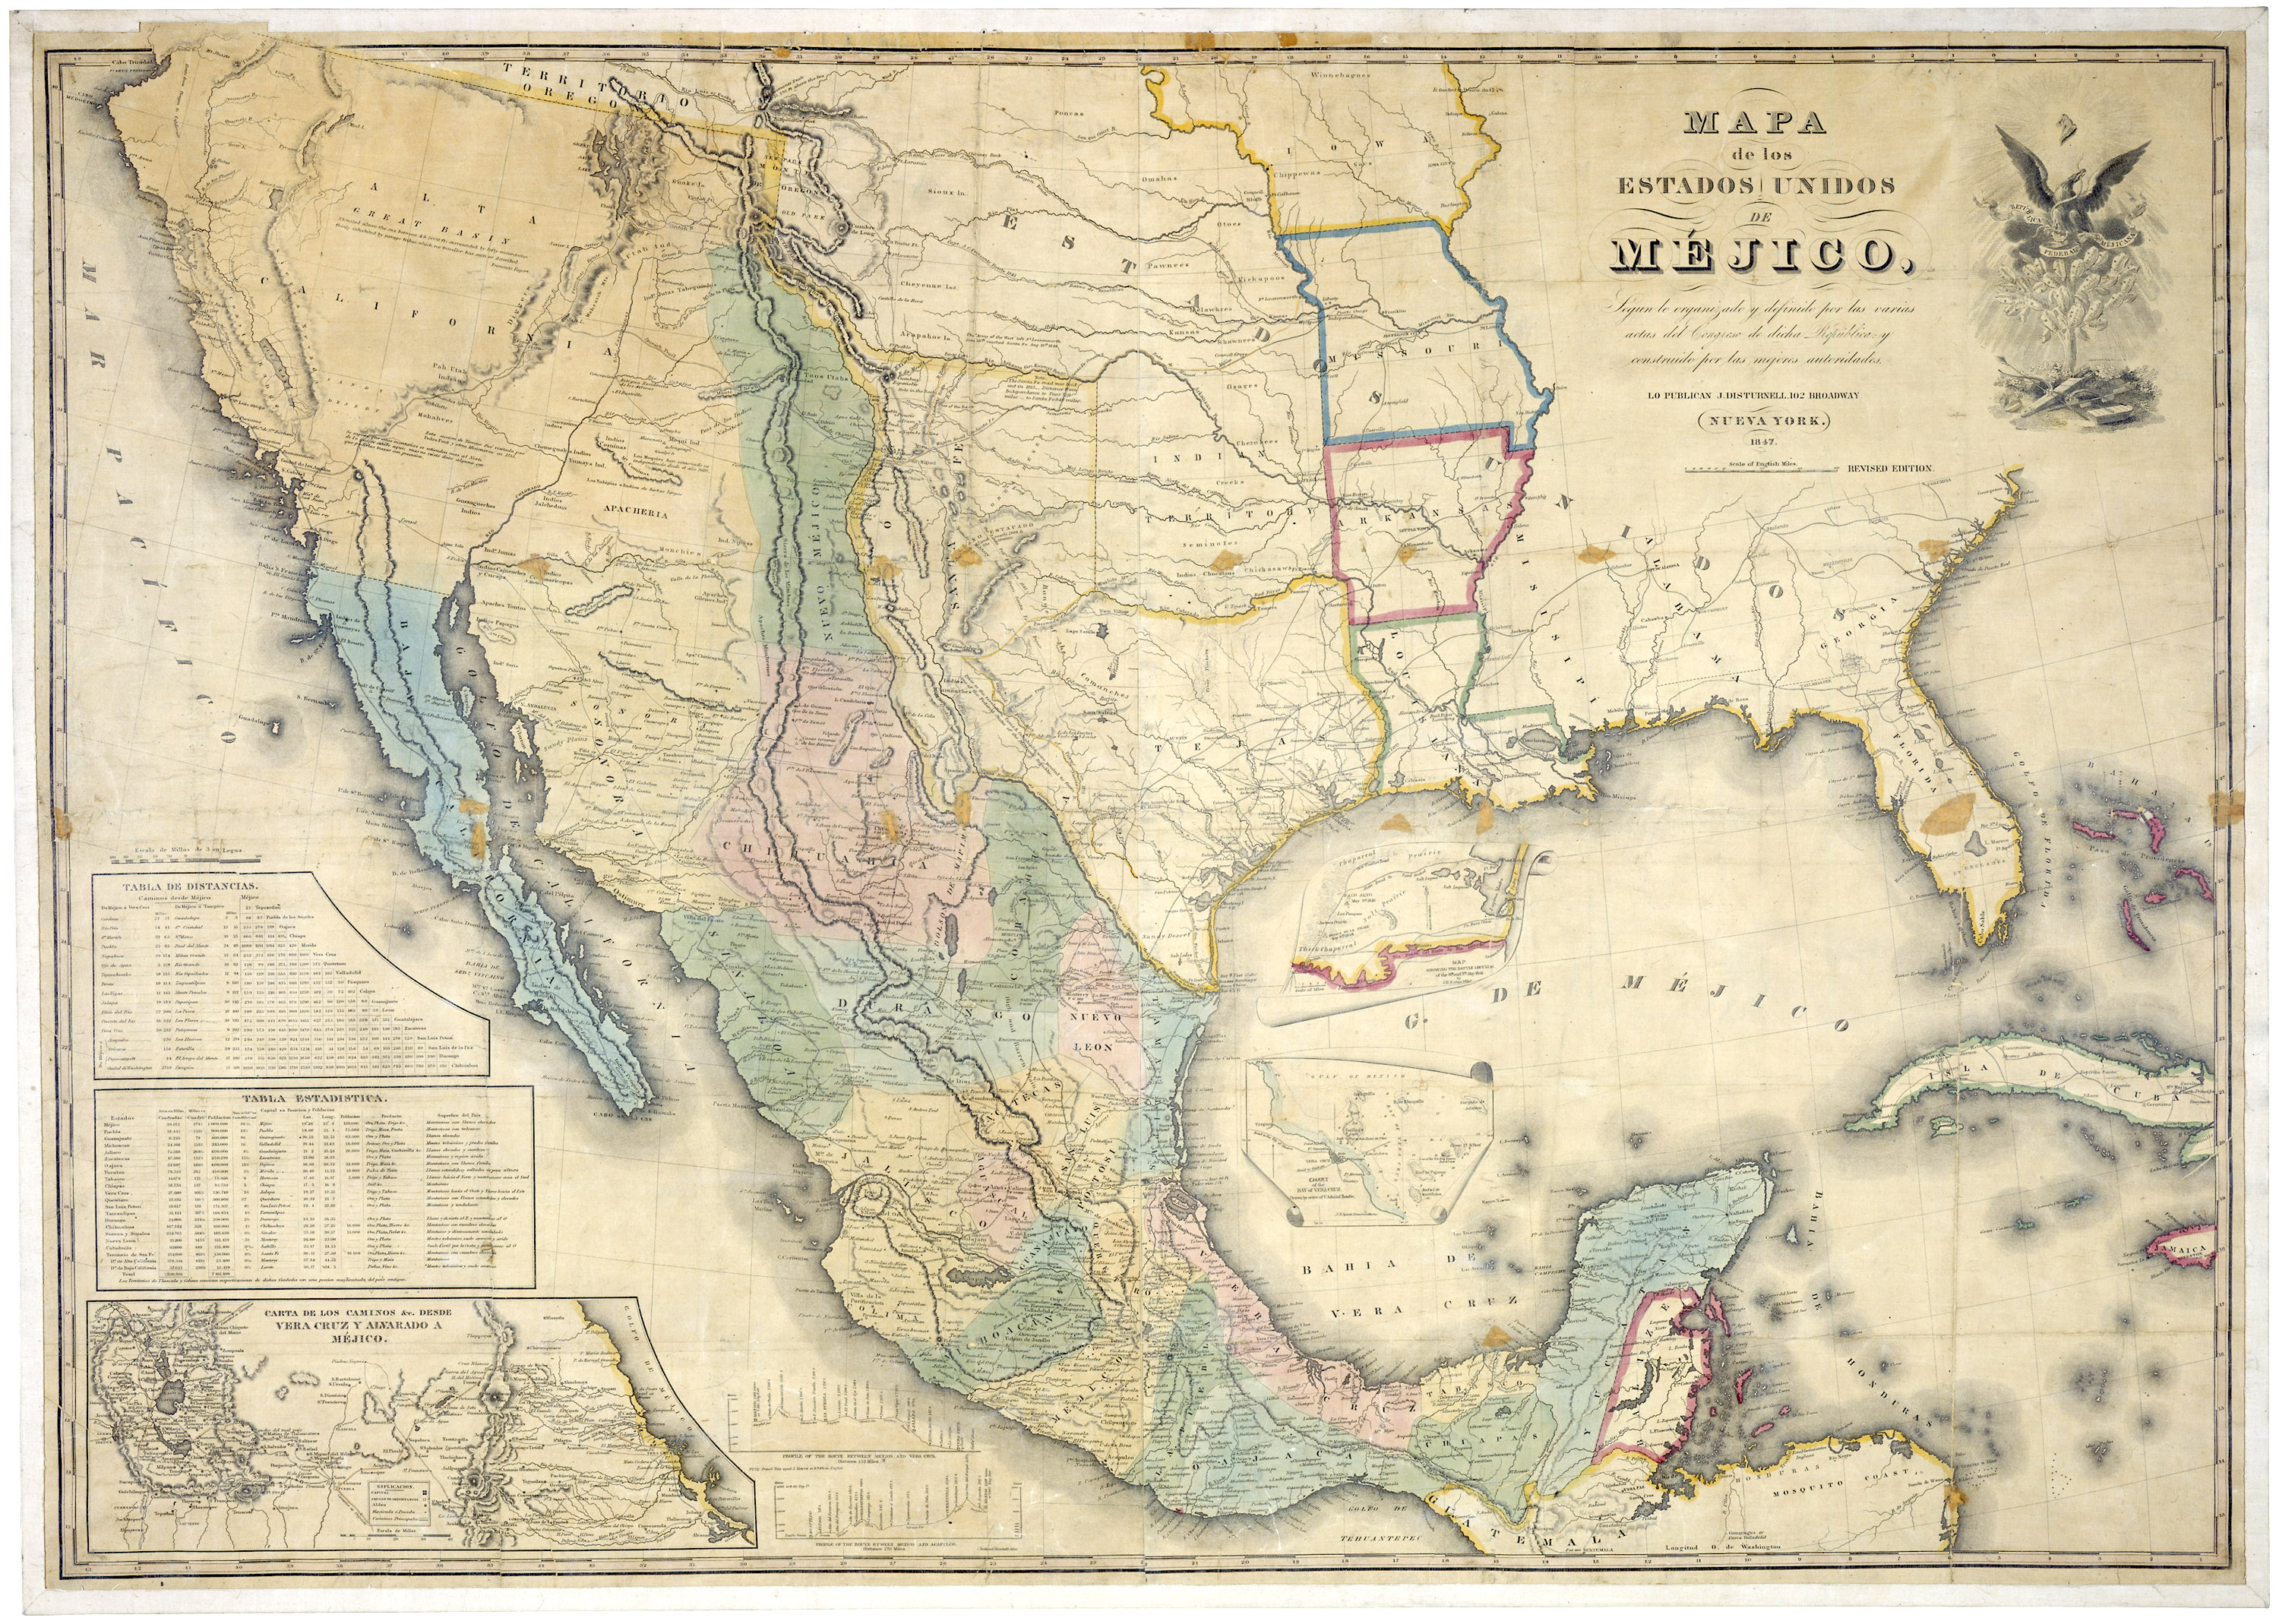 Map_of_Mexico_1847.jpg